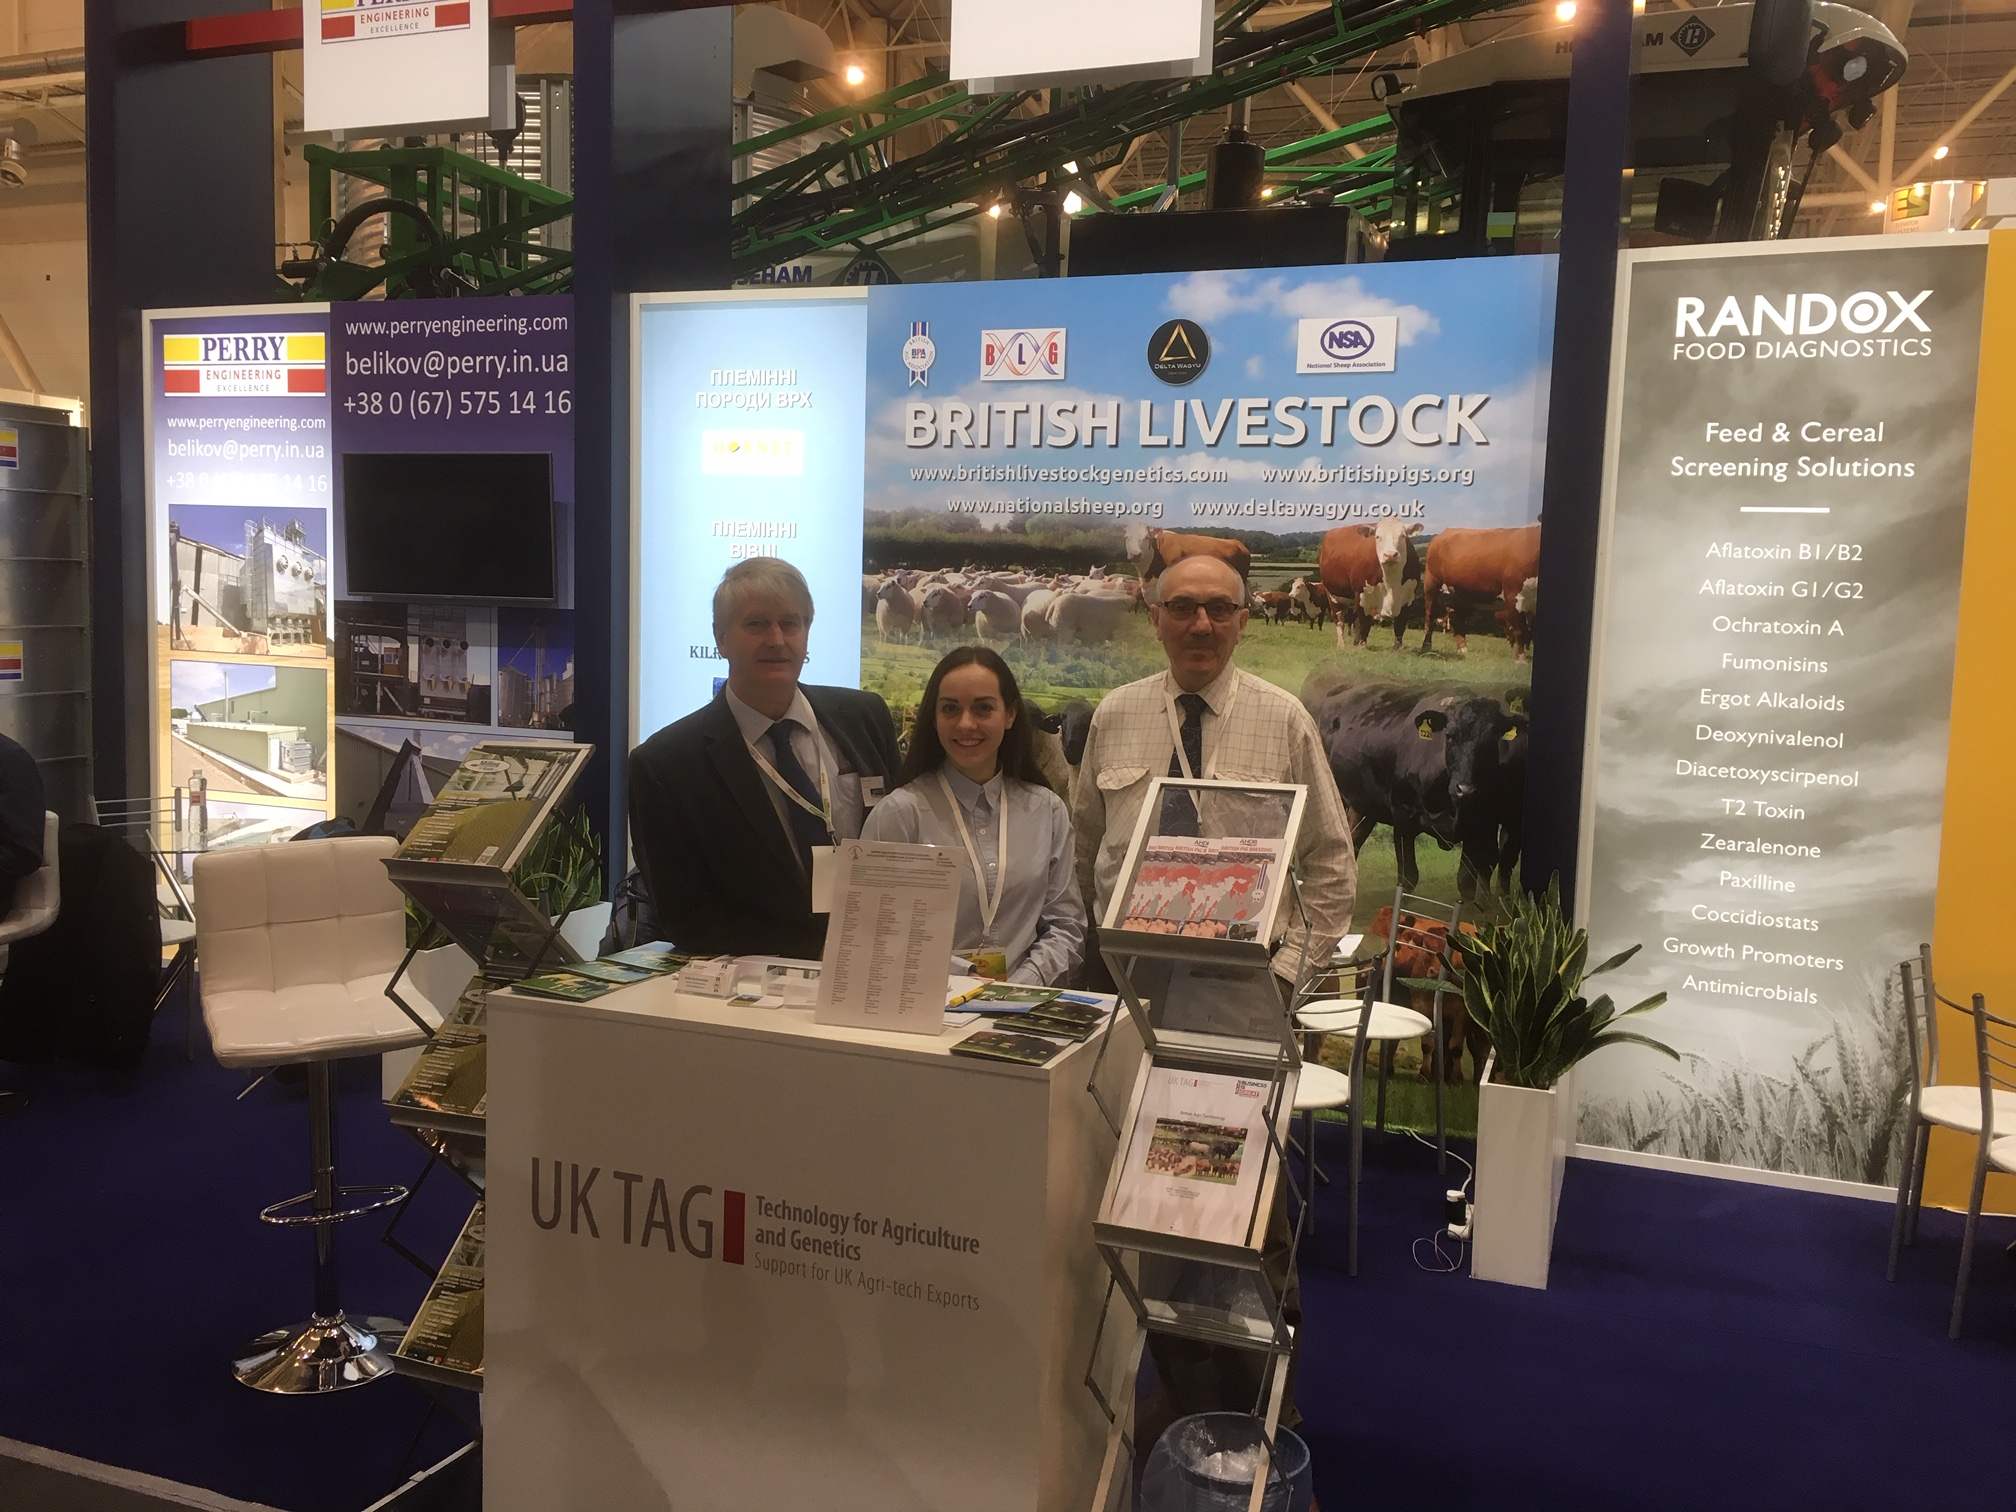 Edward Adamson, Alina Bolynets (interpreter) & Chris Jackson on the British Livestock stand